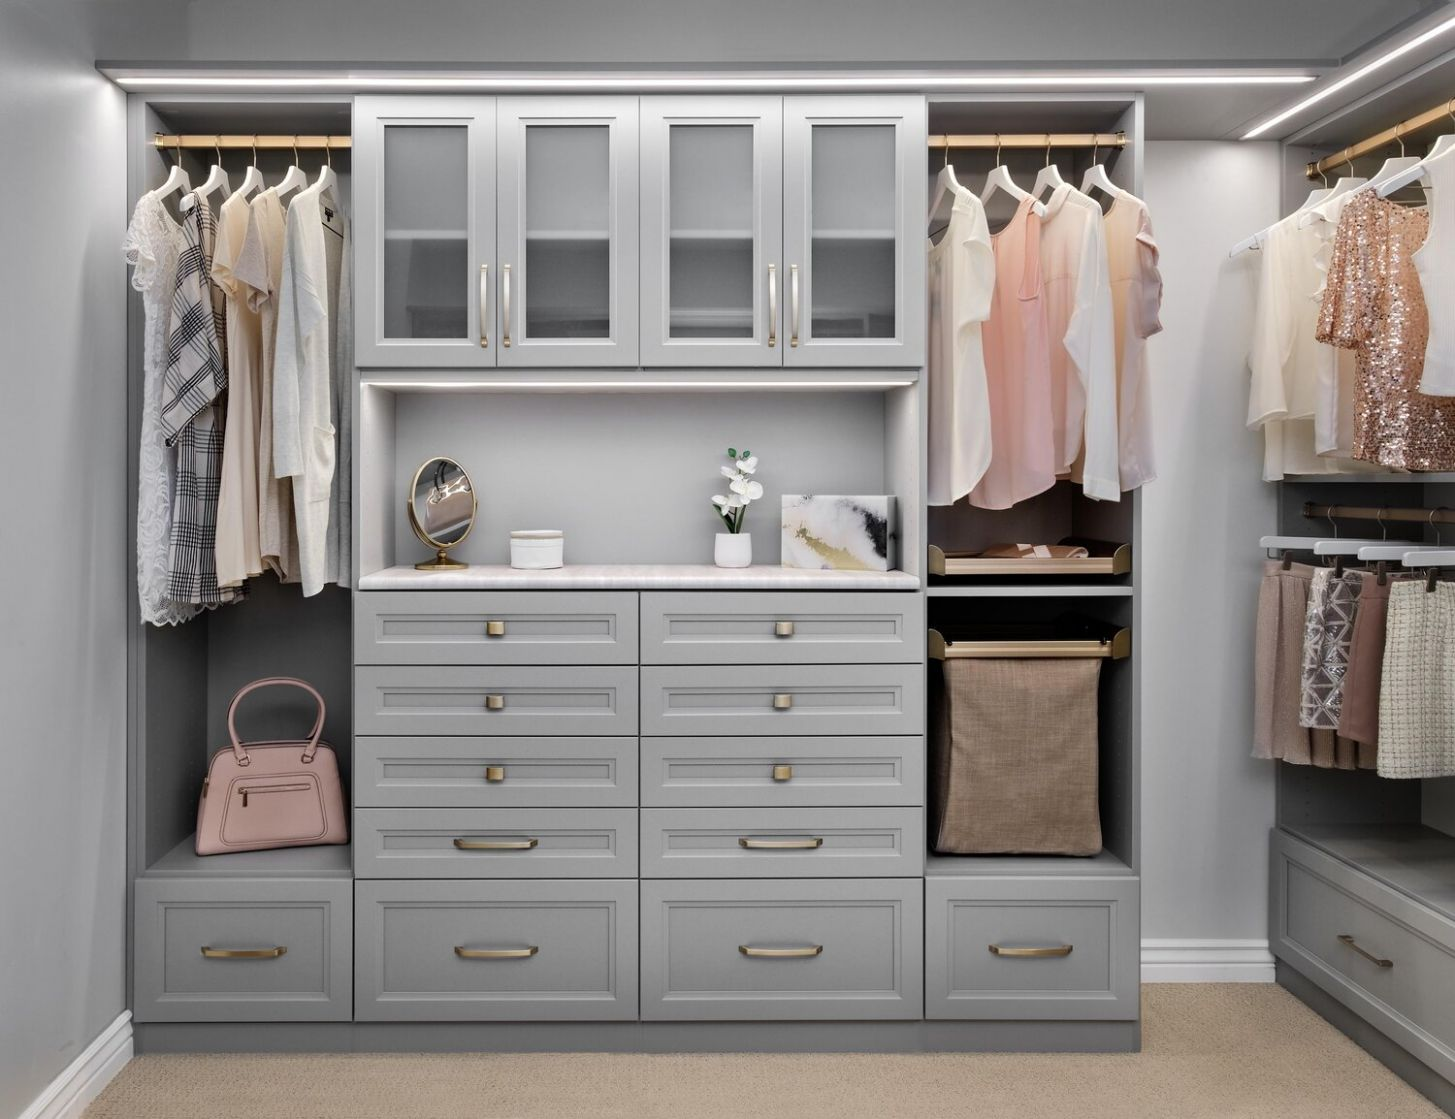 Closet Ideas — Closets of Tulsa